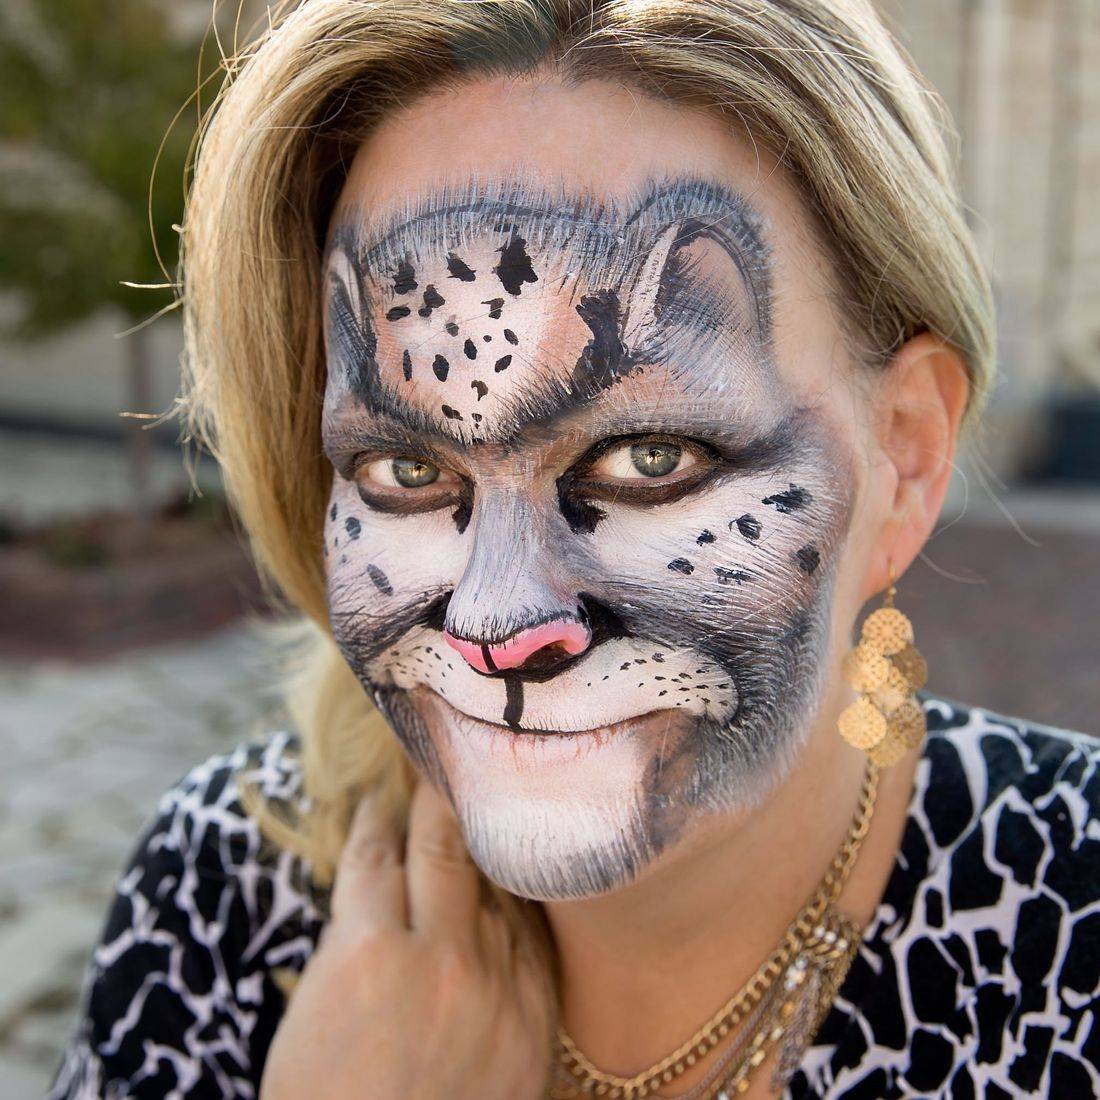 Rainbow kitty face paint, face painting parties, birthdays, kids events, entertainment, face painter, face painting near me, Chicago face painting, angel, kitty cat face painting